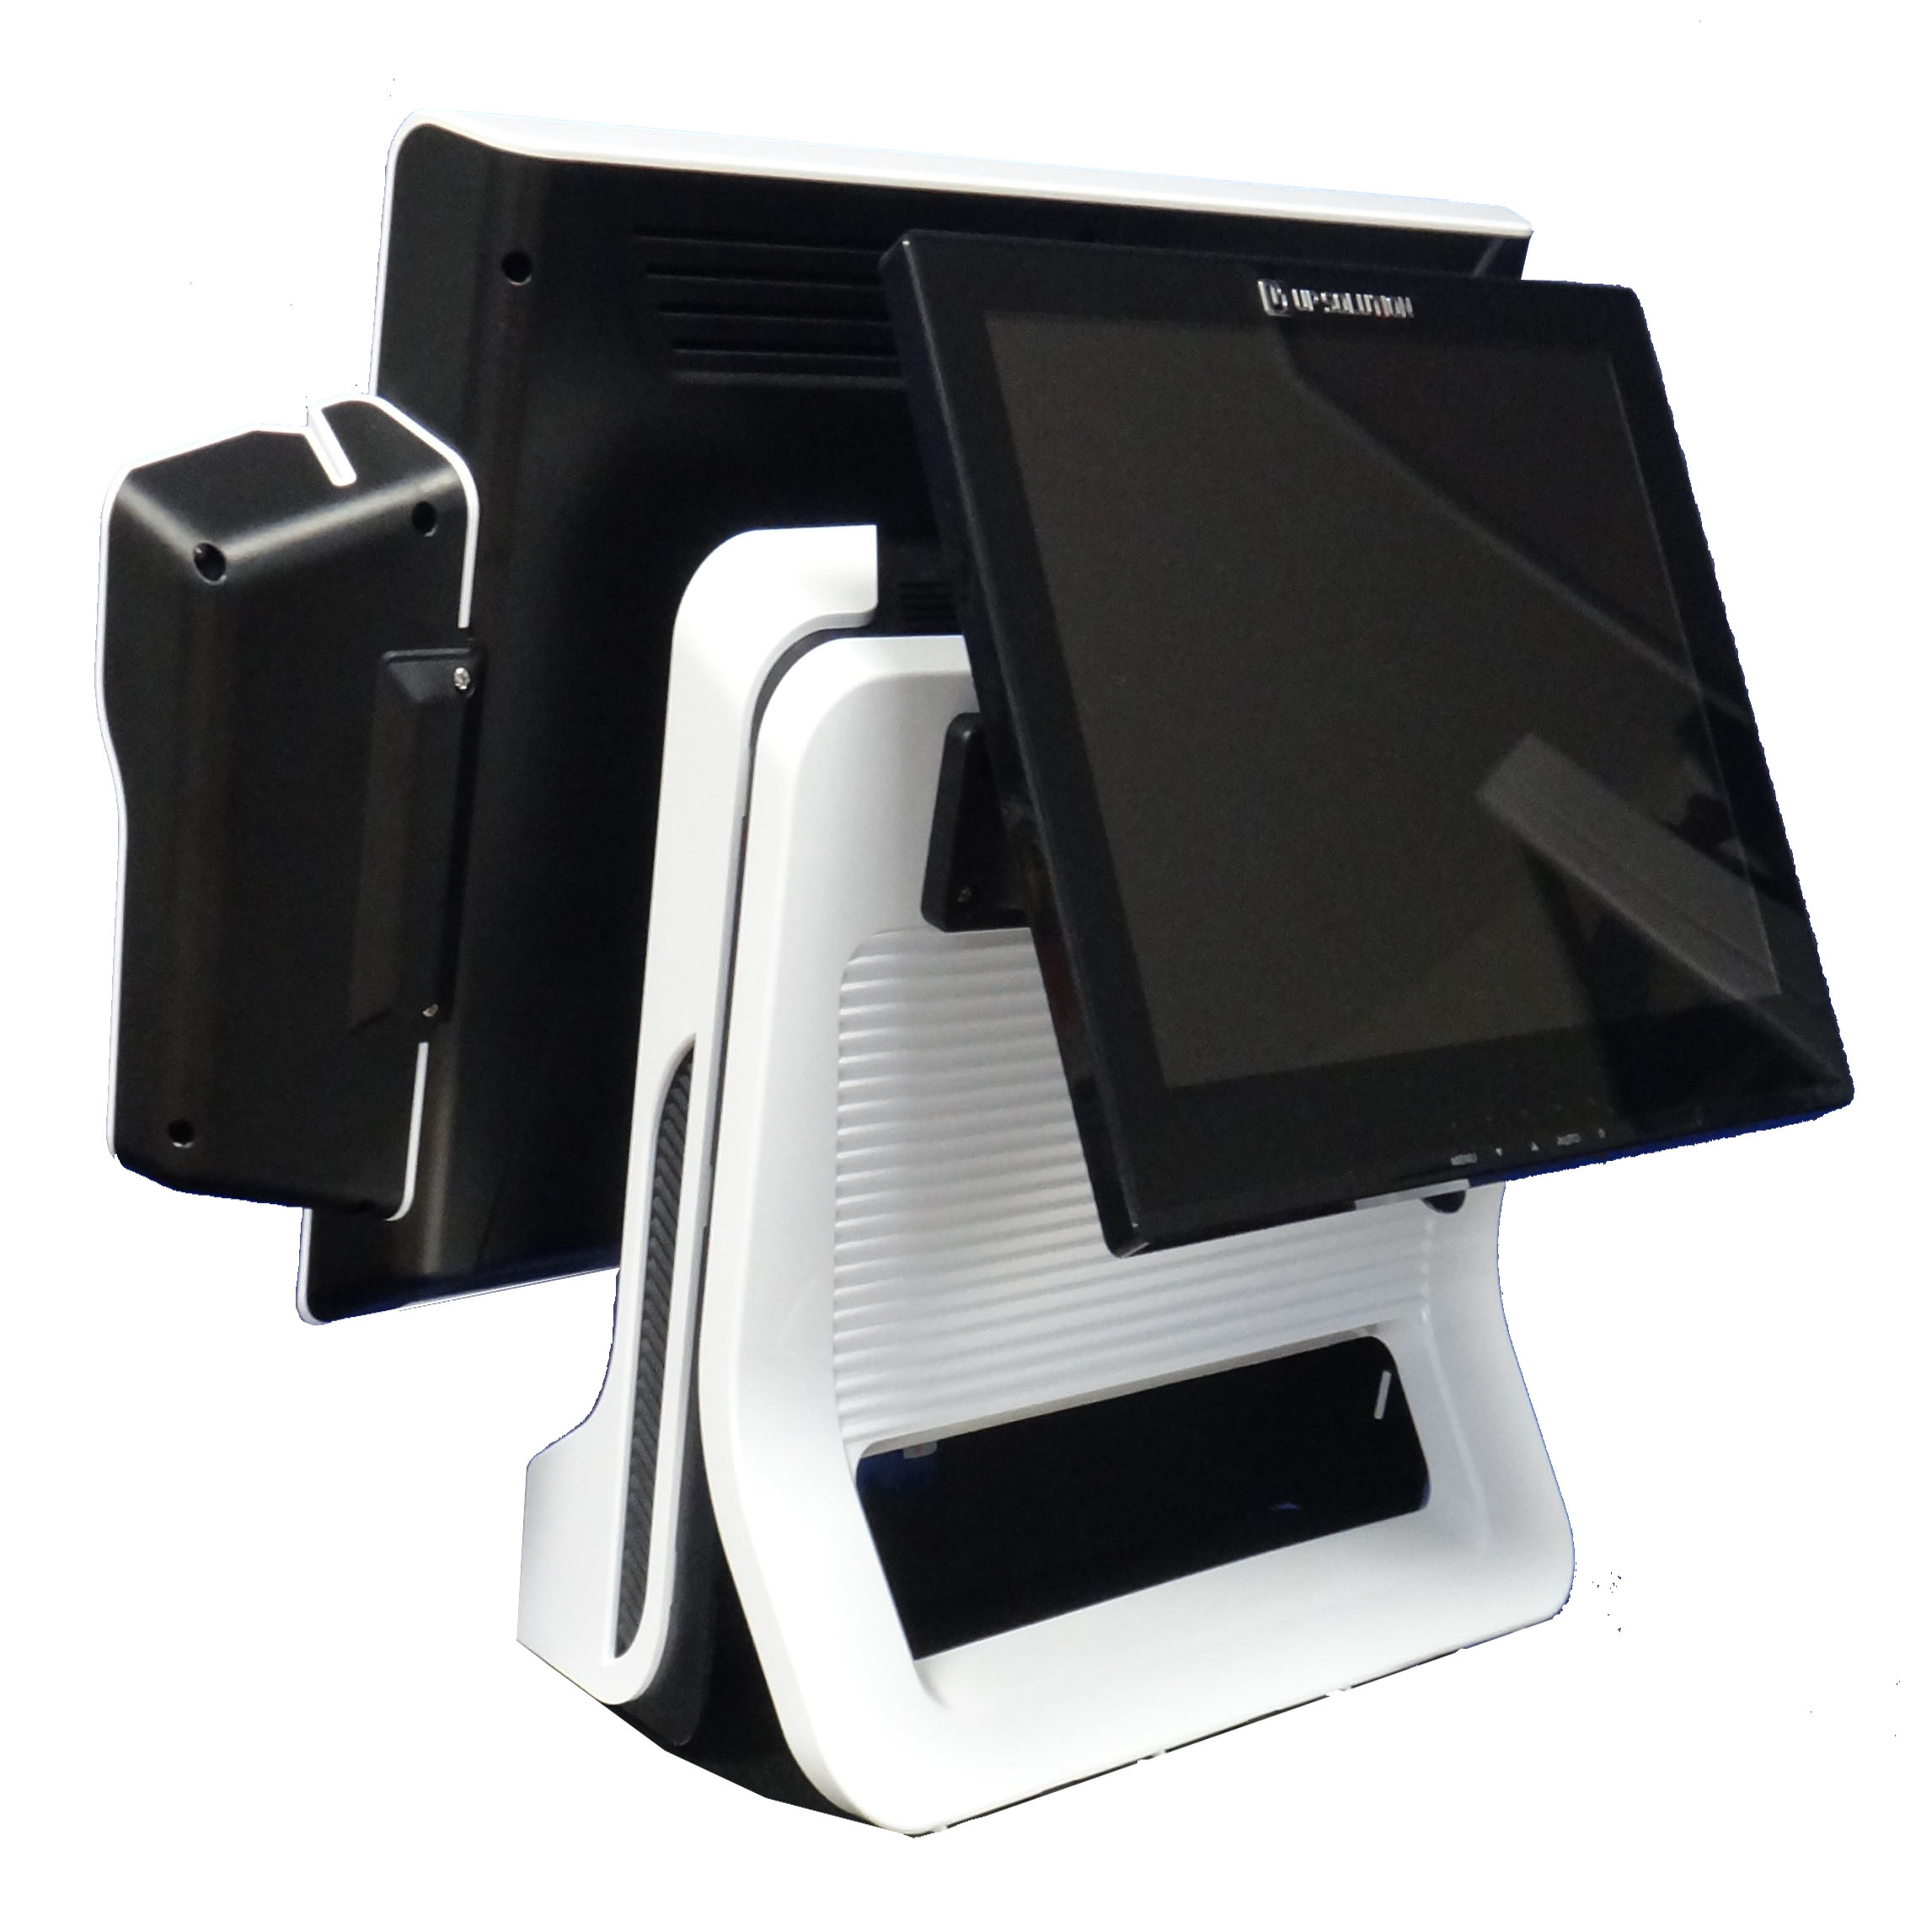 Model-5i-Best-POS-Point-of-Sale-Sintel-Systems-855-POS-SALE-www.SintelSystemsPOS.com